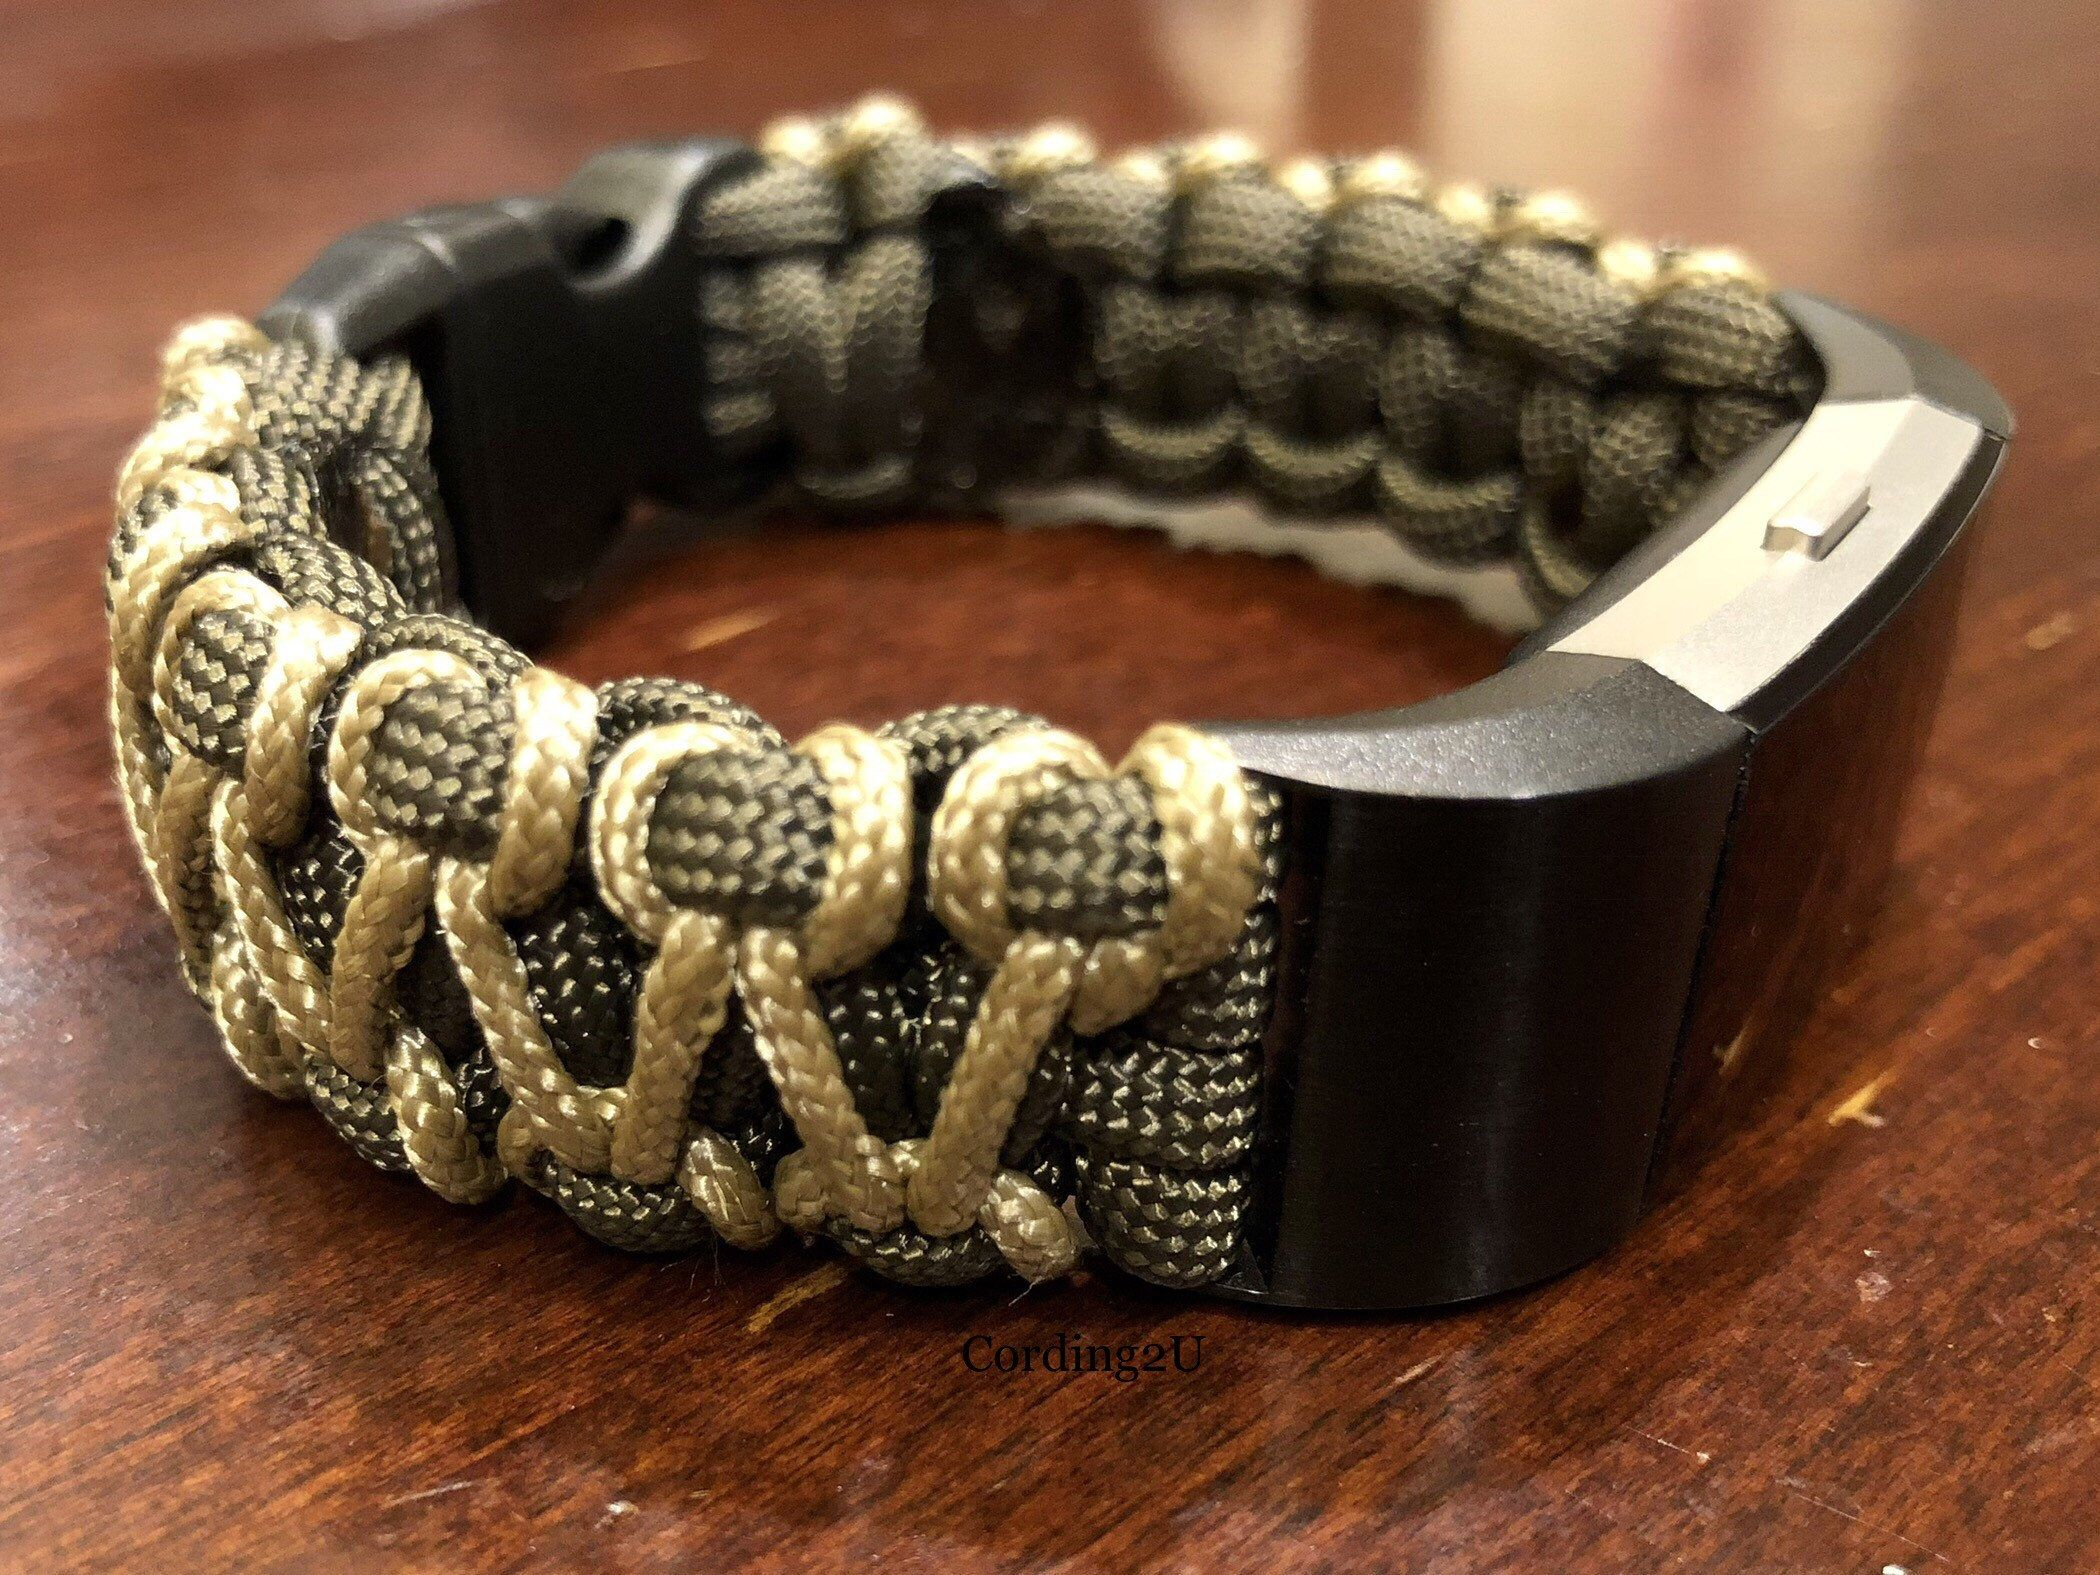 Fitbit Charge 2 3 4 Watch Band Paracord Fitbit Charge 2 3 4 Etsy Watch Bands Paracord Fitbit Accessories